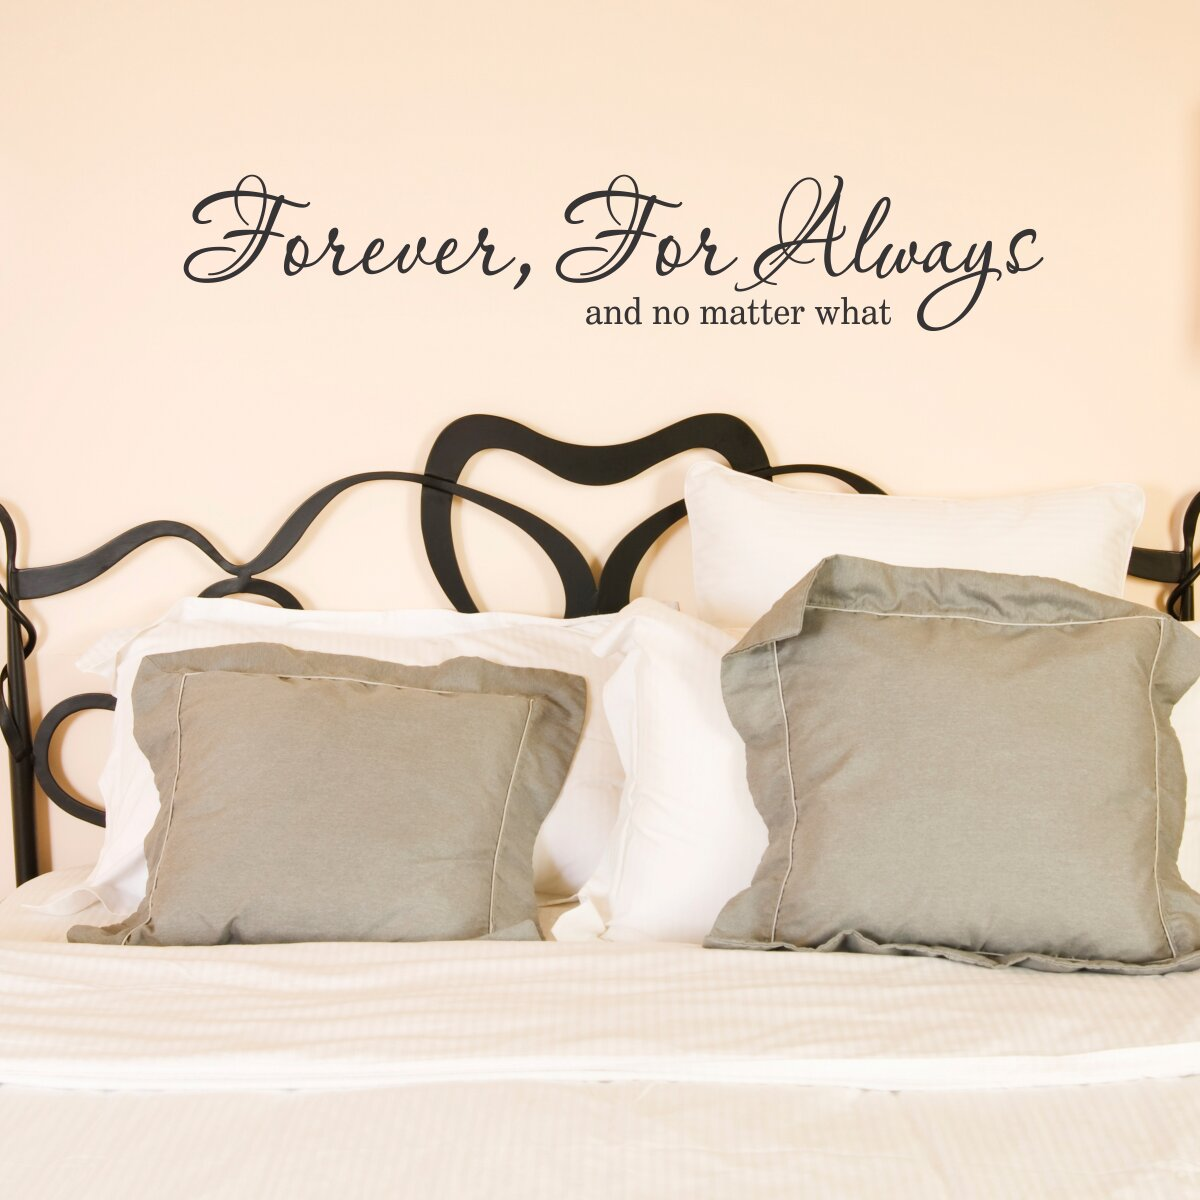 Belvedere designs llc forever for always wall quotes decal reviews wayfair